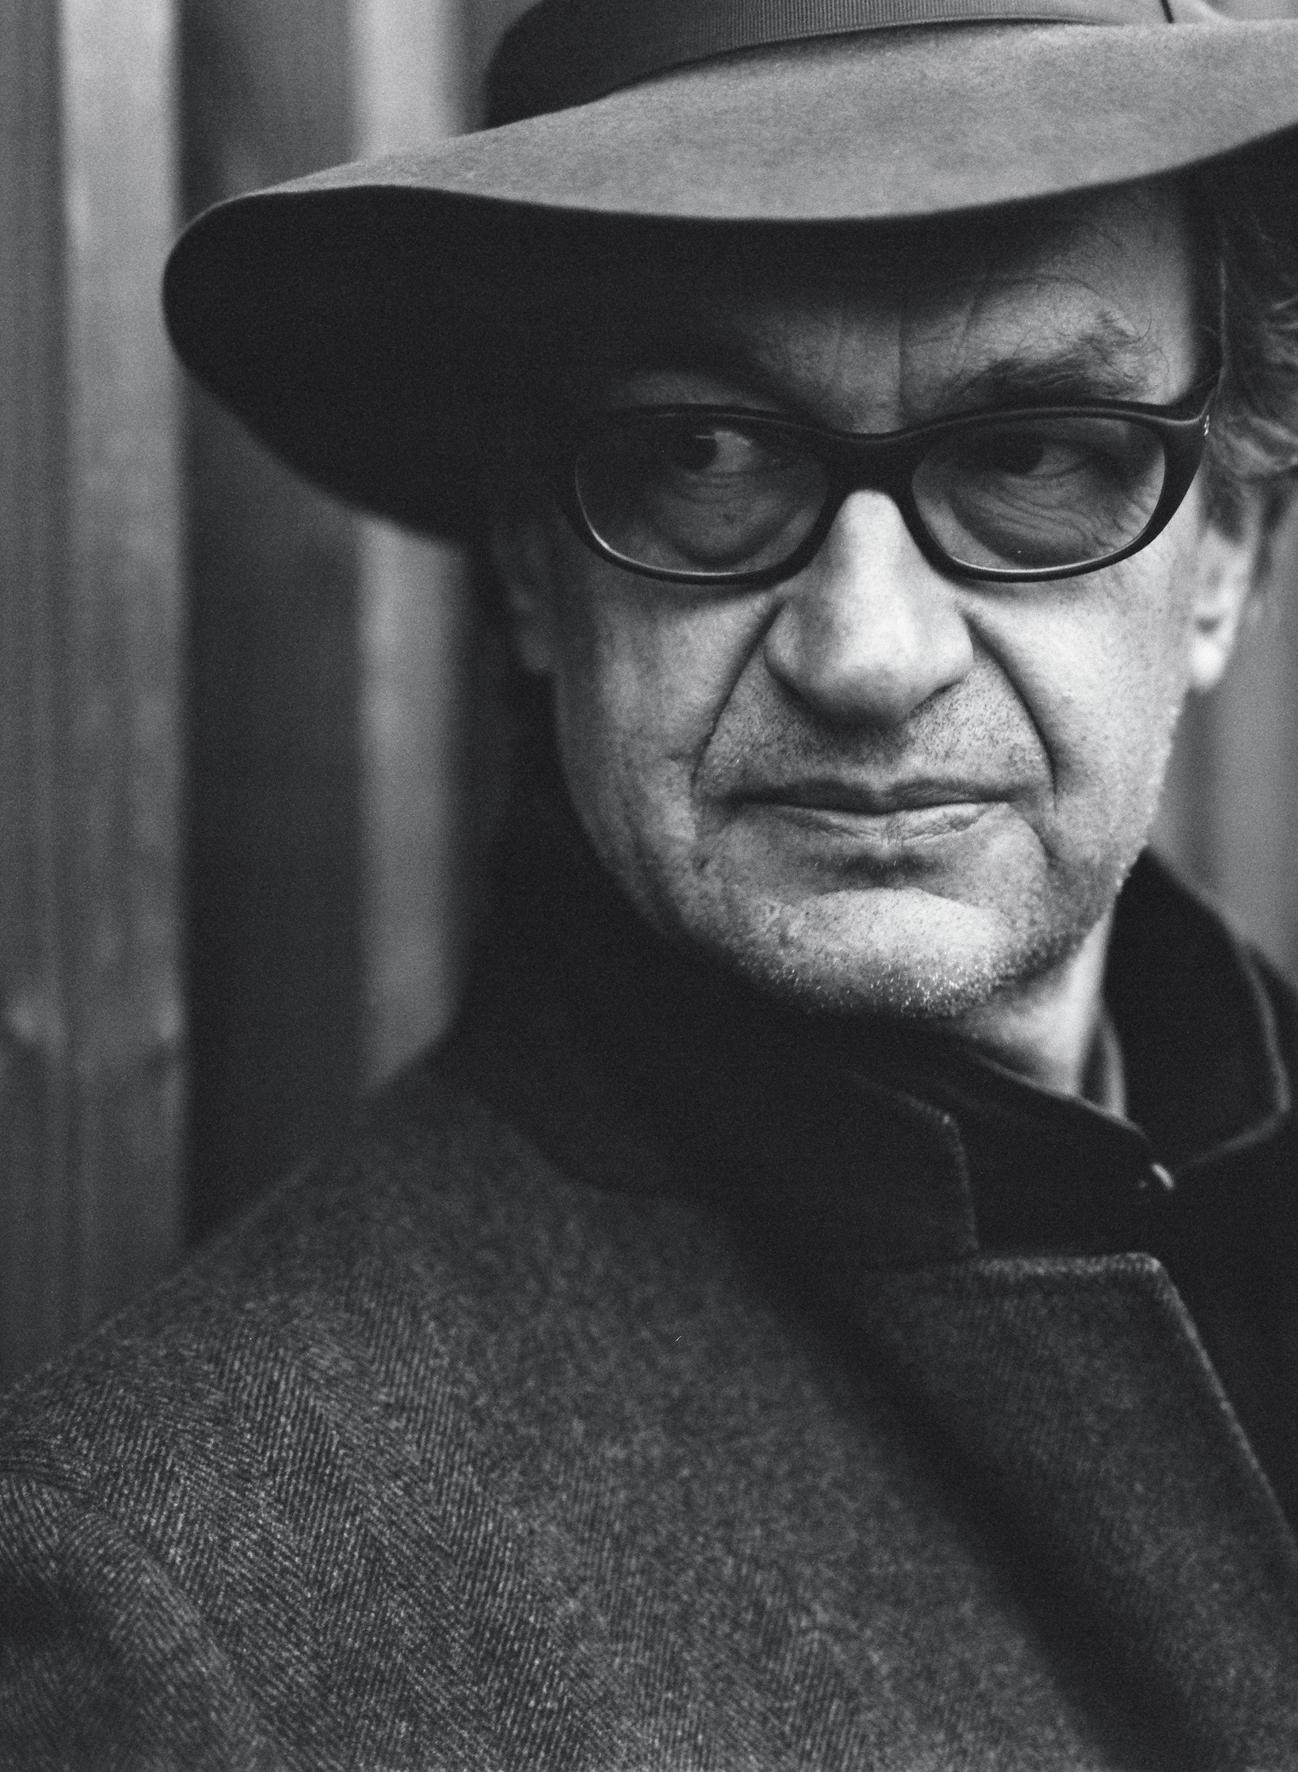 Wim Wenders Palermo Shooting FIlm Review